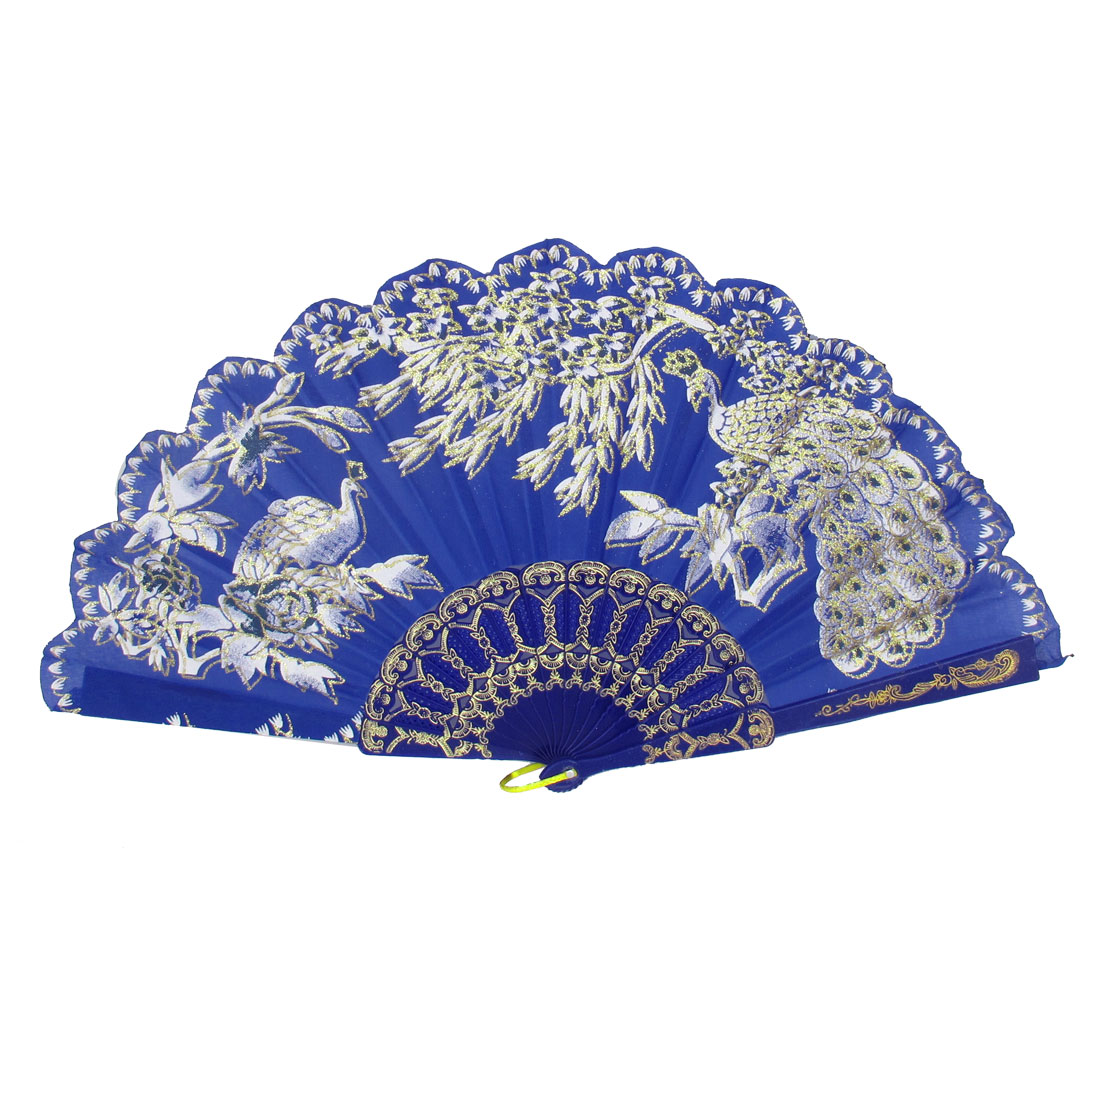 Women Party Gift Carved Ribs Floral Peacock Pattern Folding Hand Fan Blue